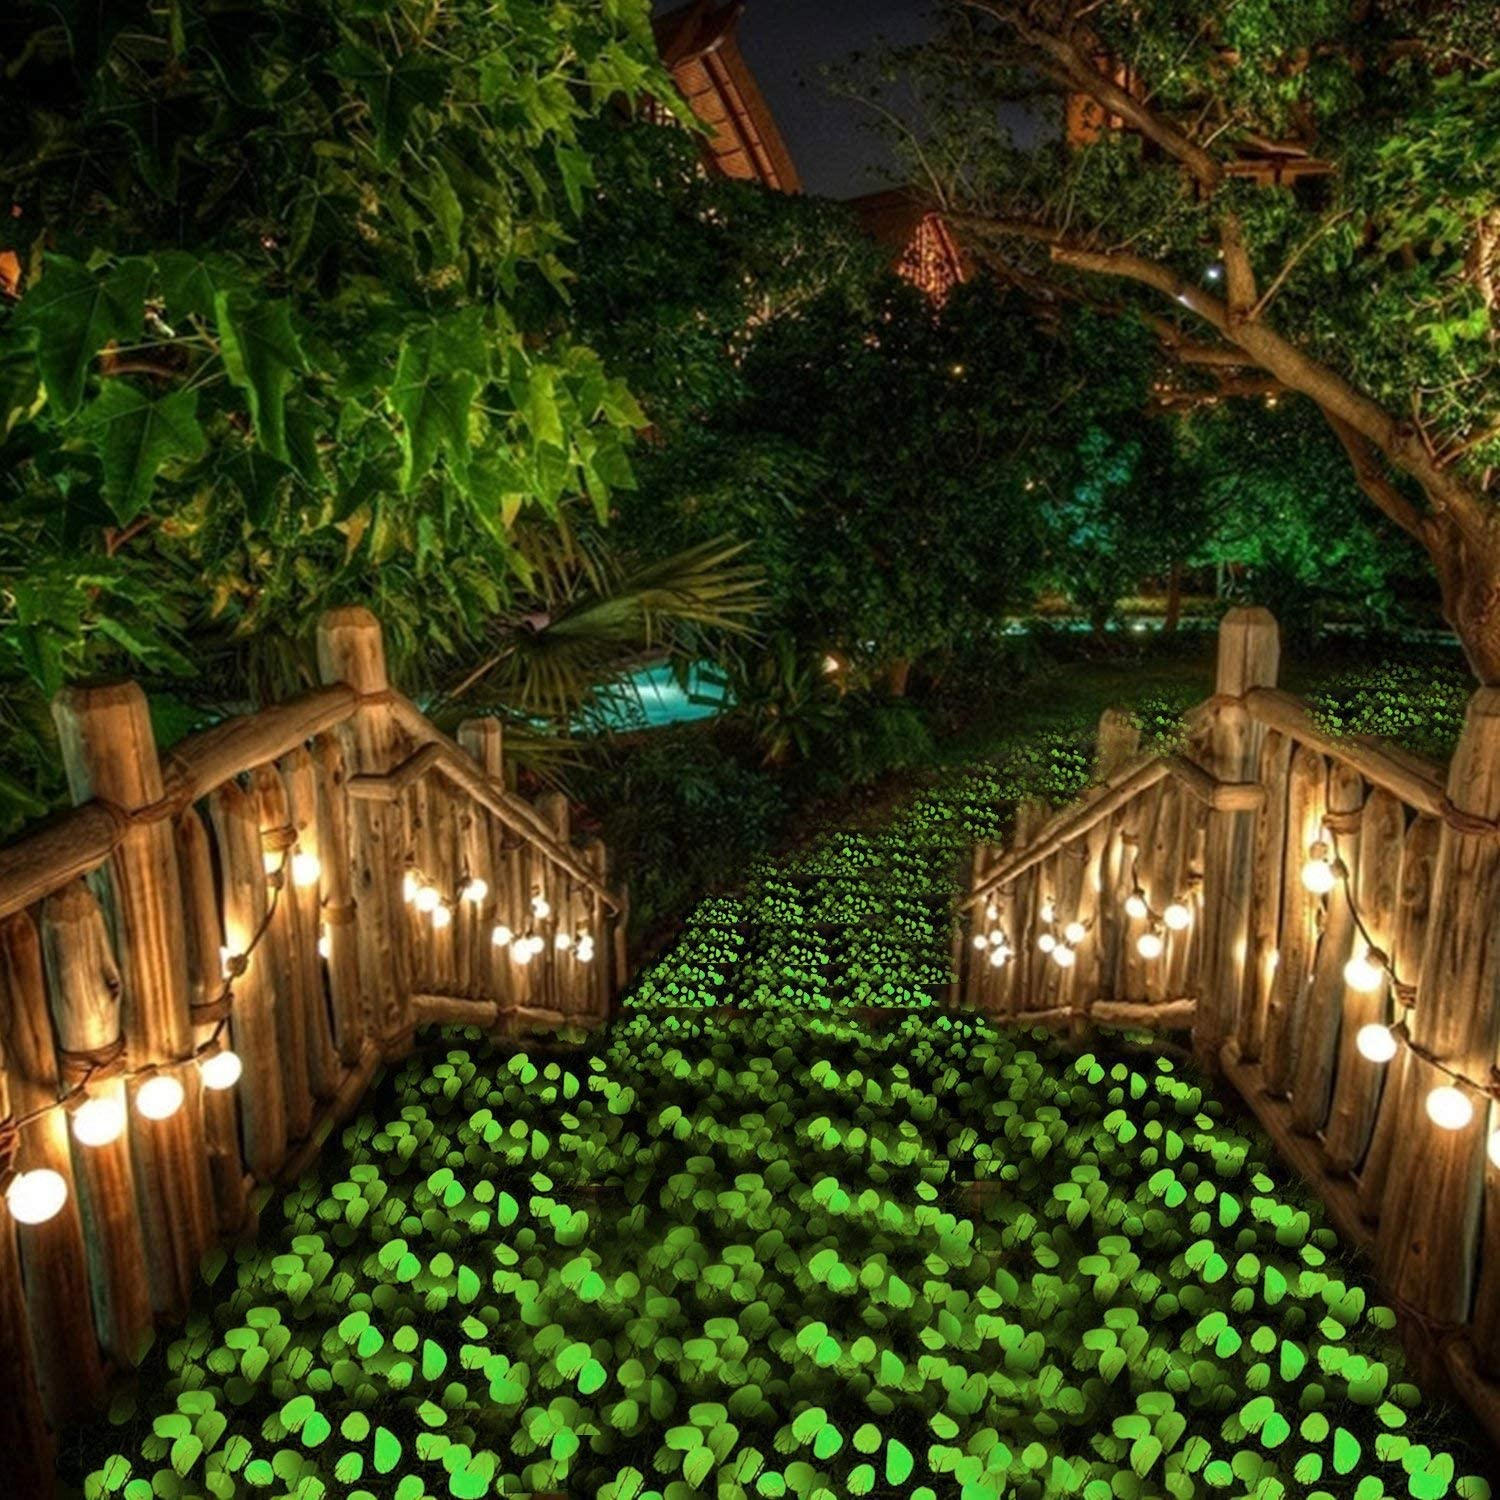 chic style 150pcs Glow in The Dark Garden Pebbles for Walkways and Decor (Green)